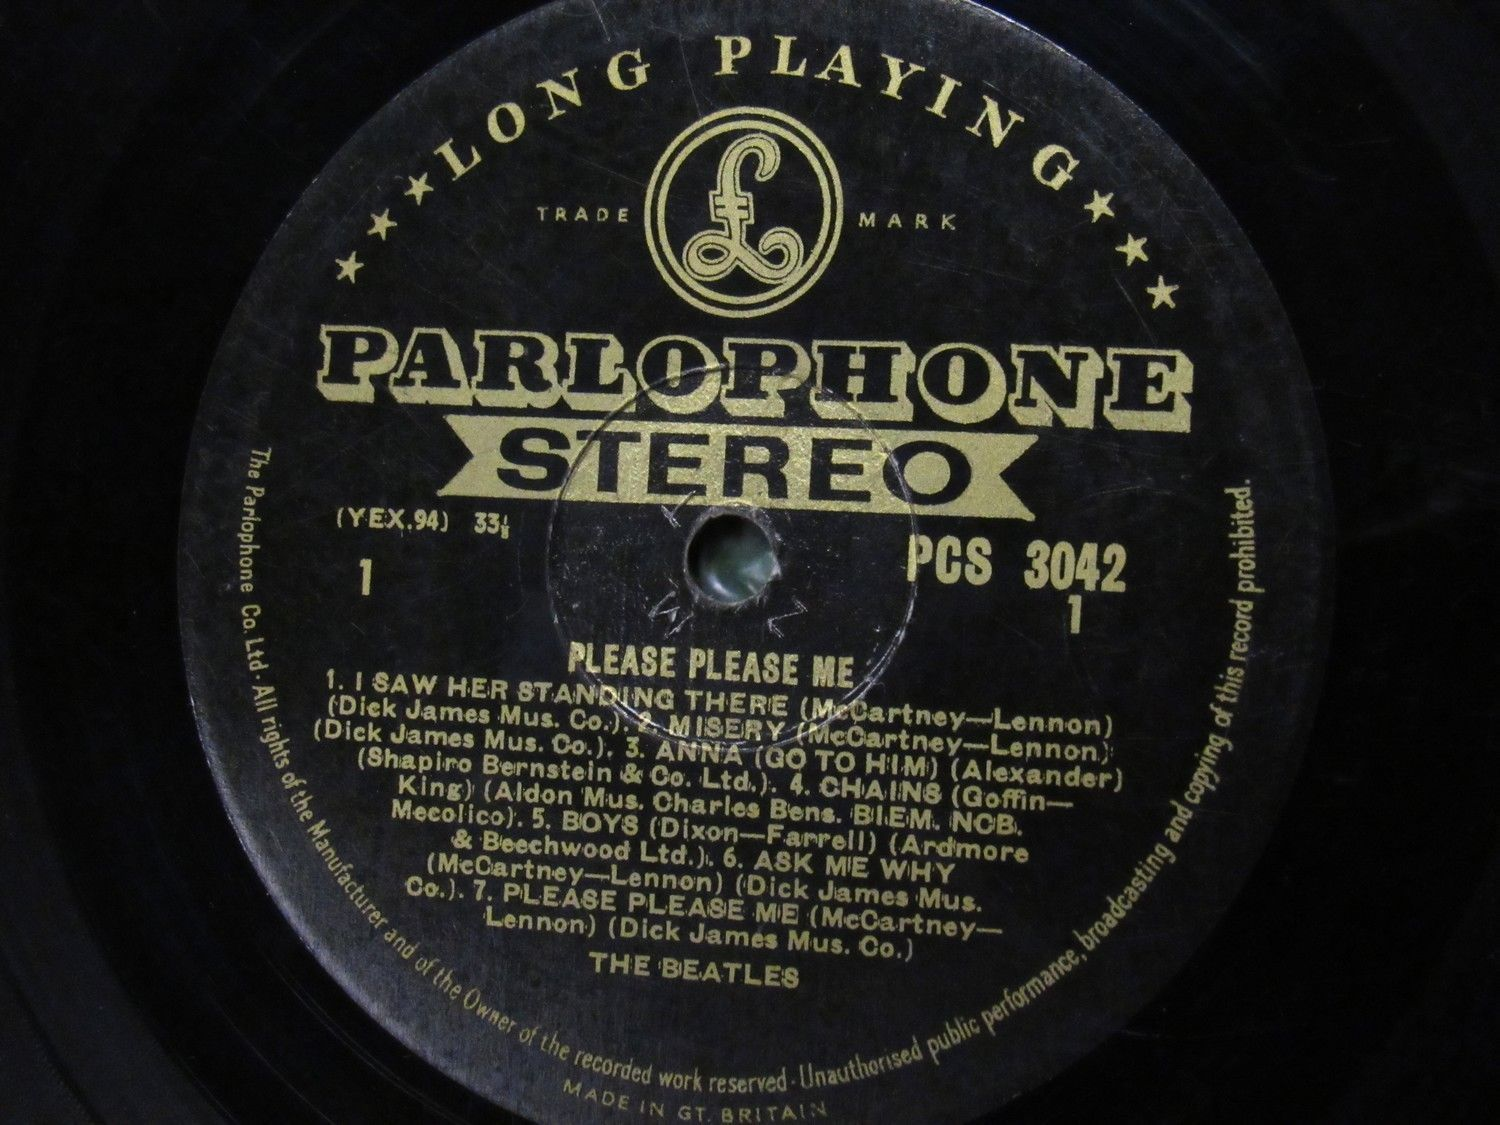 The Beatles Please Please Me Stereo Gold Label 1G 1R Super Rare ZMT Tax Code